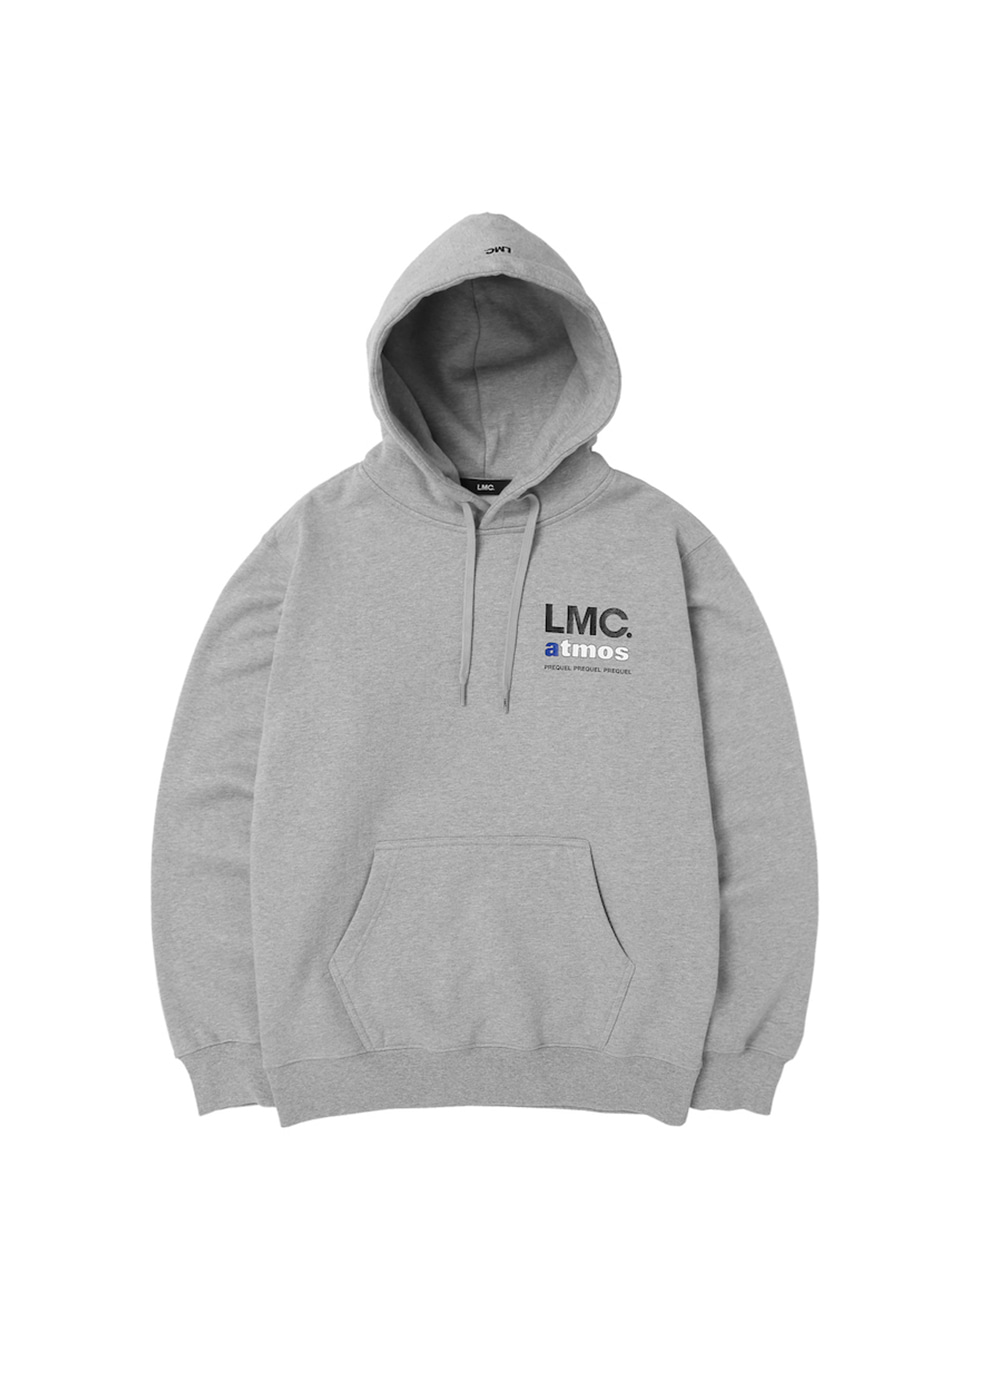 LMC x ATMOS PREQUEL HOODIE heather gray